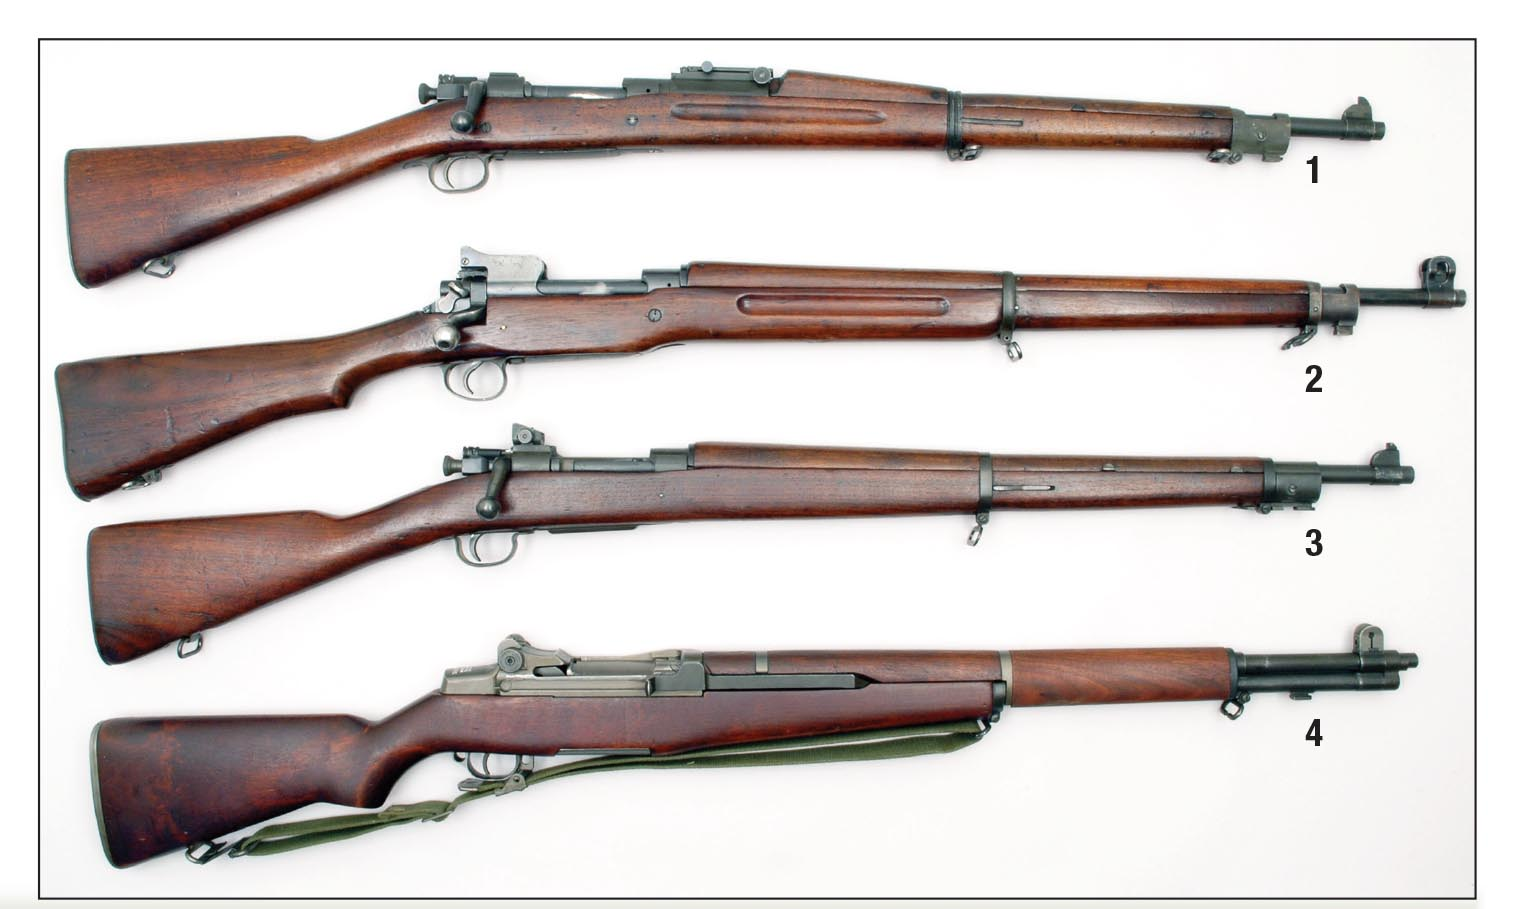 These four rifles were the most abundant .30-06 infantry rifles used by American troops between 1906 and the late 1950s: (1) Model 1903, (2) Model 1917, (3) Model 1903A3 and (4) M1.